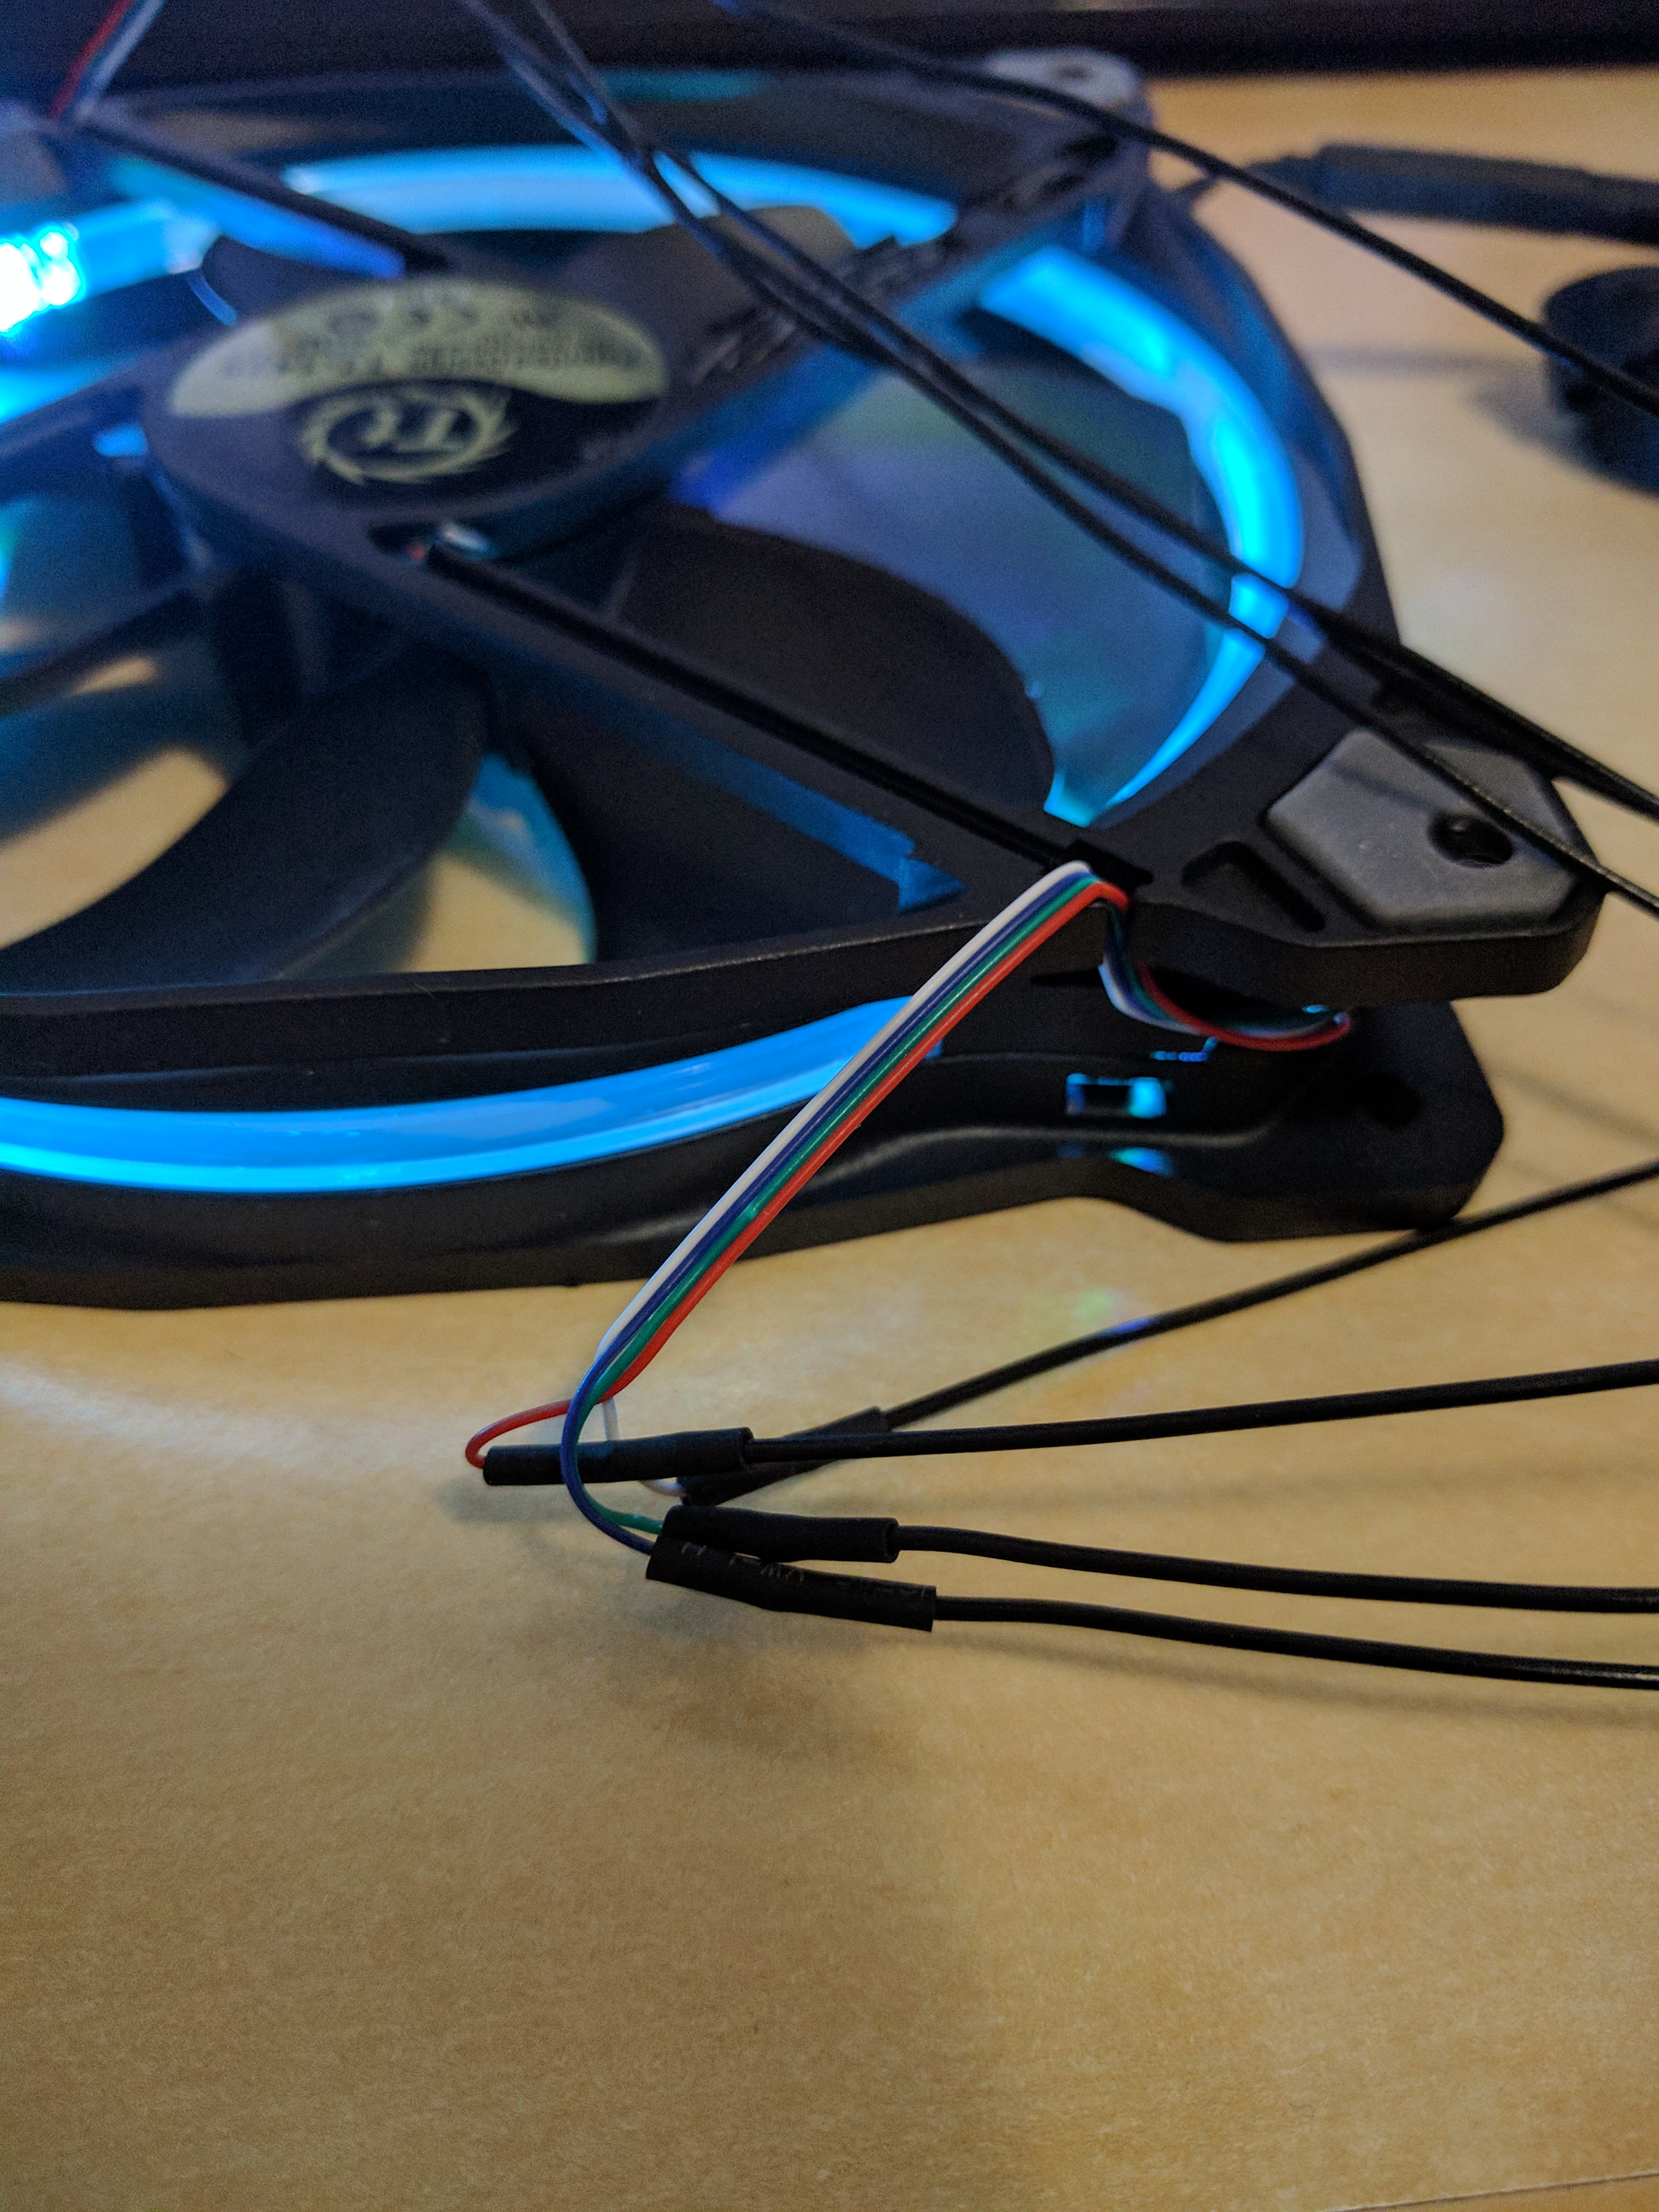 Thermaltake Riing RGB Fan Controlled Directly From Arduino